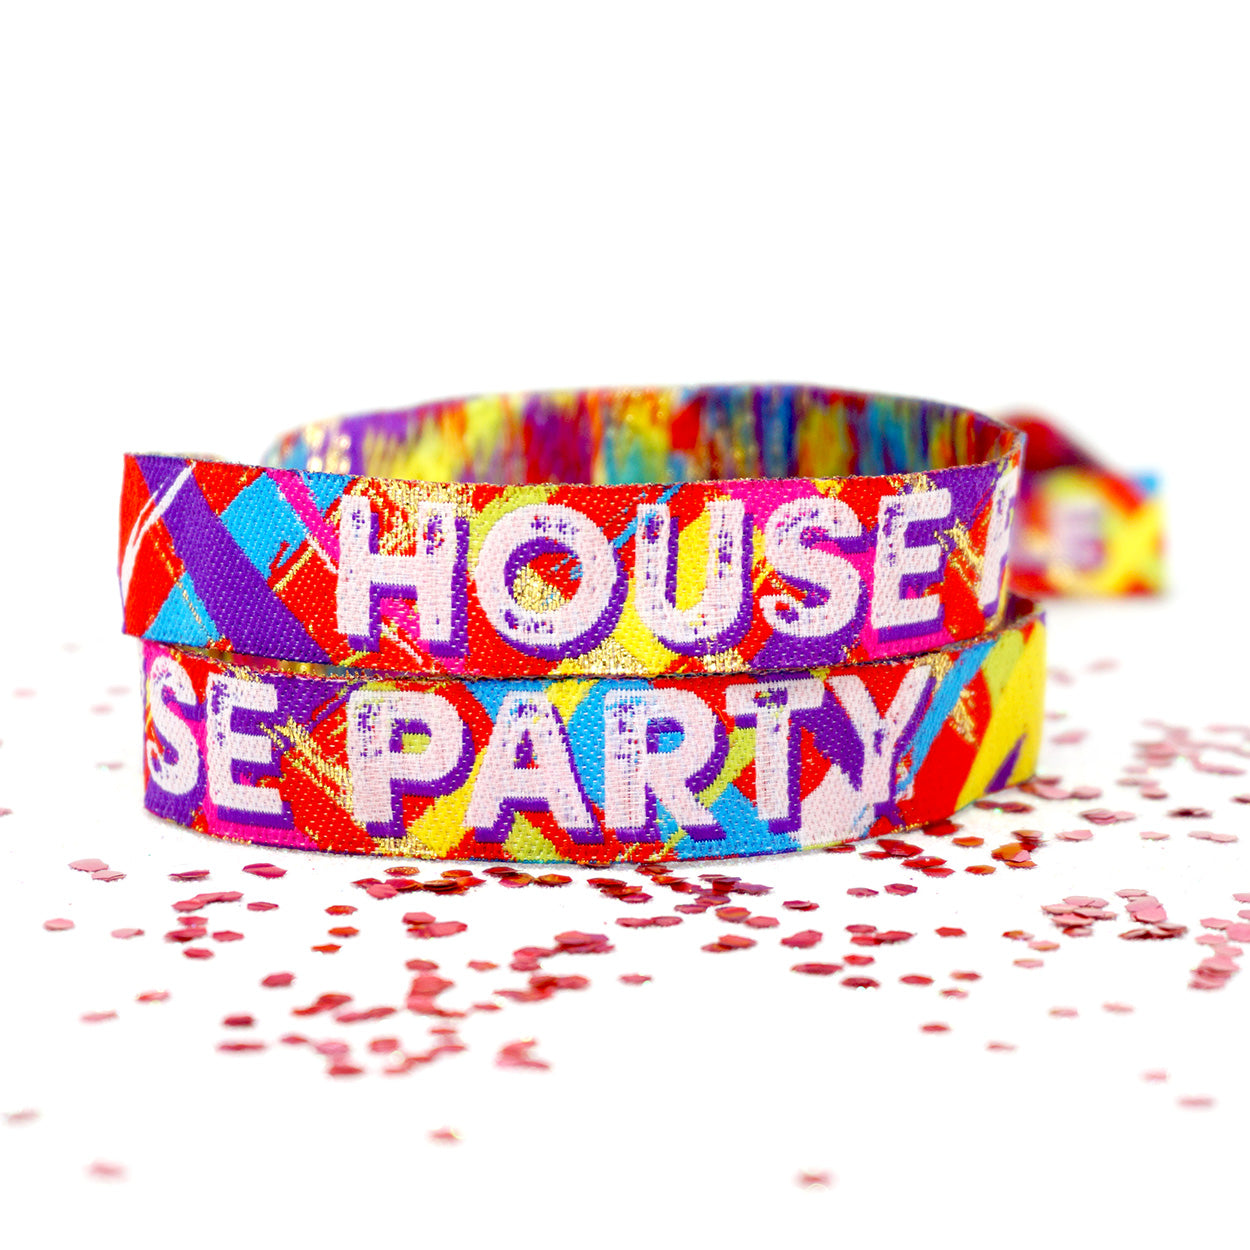 House Party festival party at home wristbands